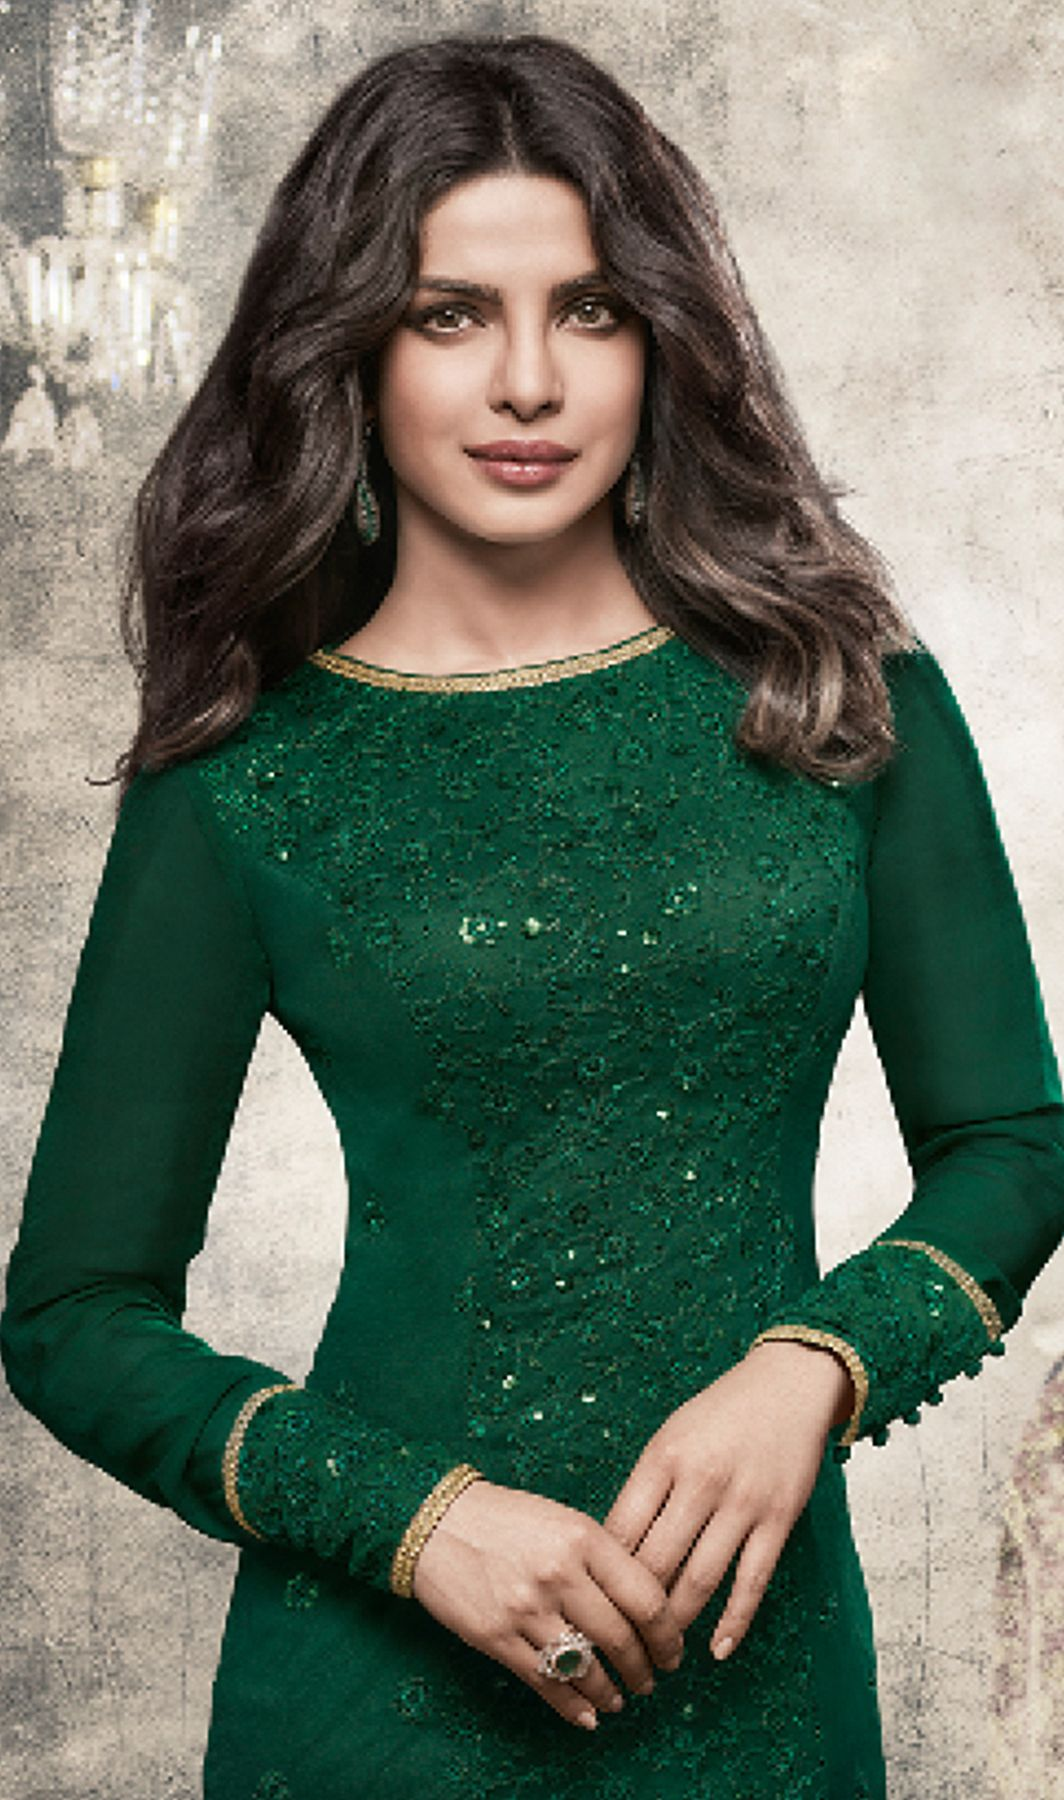 e9d2abb46fb113 Priyanka Chopra Dark Green Color Georgette Chudidar Suit | Celebrity ...